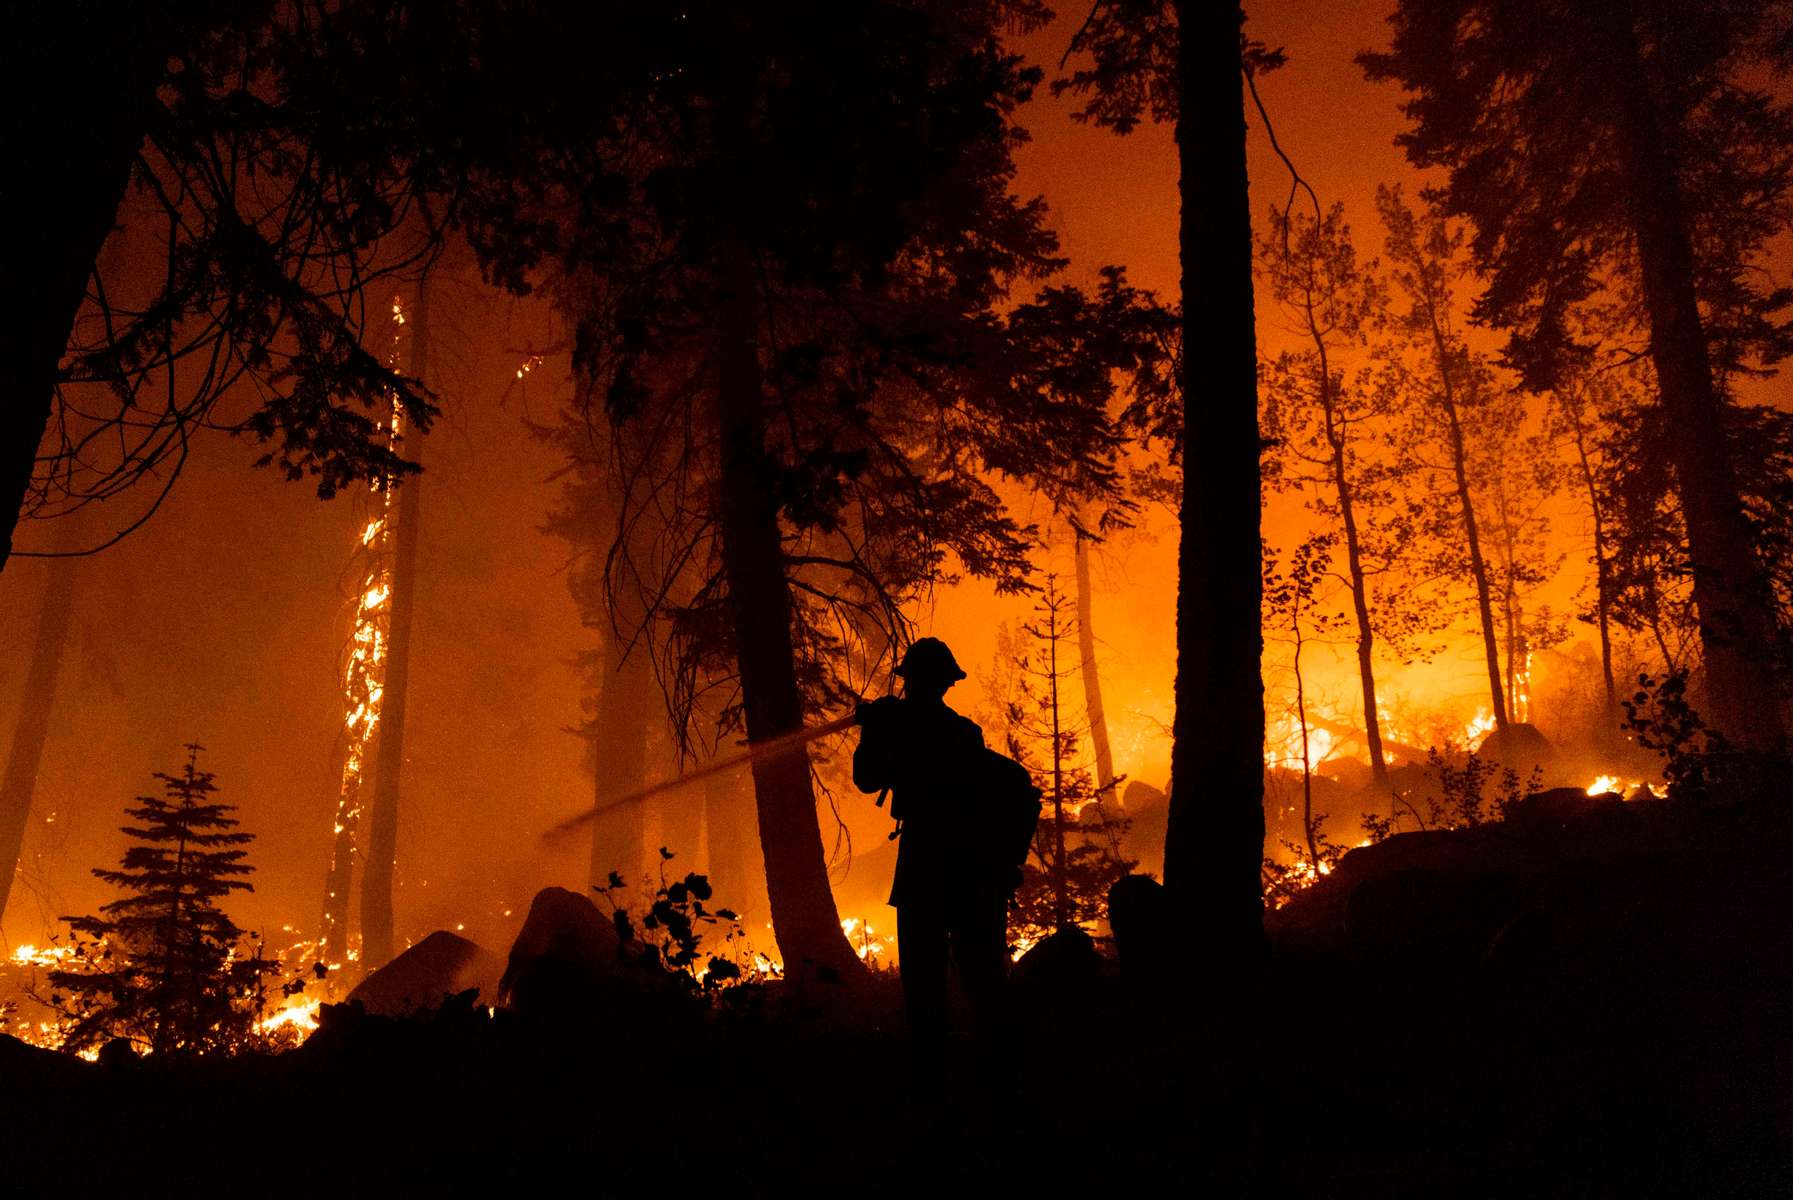 Firefighters work to protect houses from the Caldor fire on August 30, 2021, in South Lake Tahoe, California. The Caldor Fire has burned almost 200.000 acres, destroyed over 660 structures and is currently 16 percent contained.